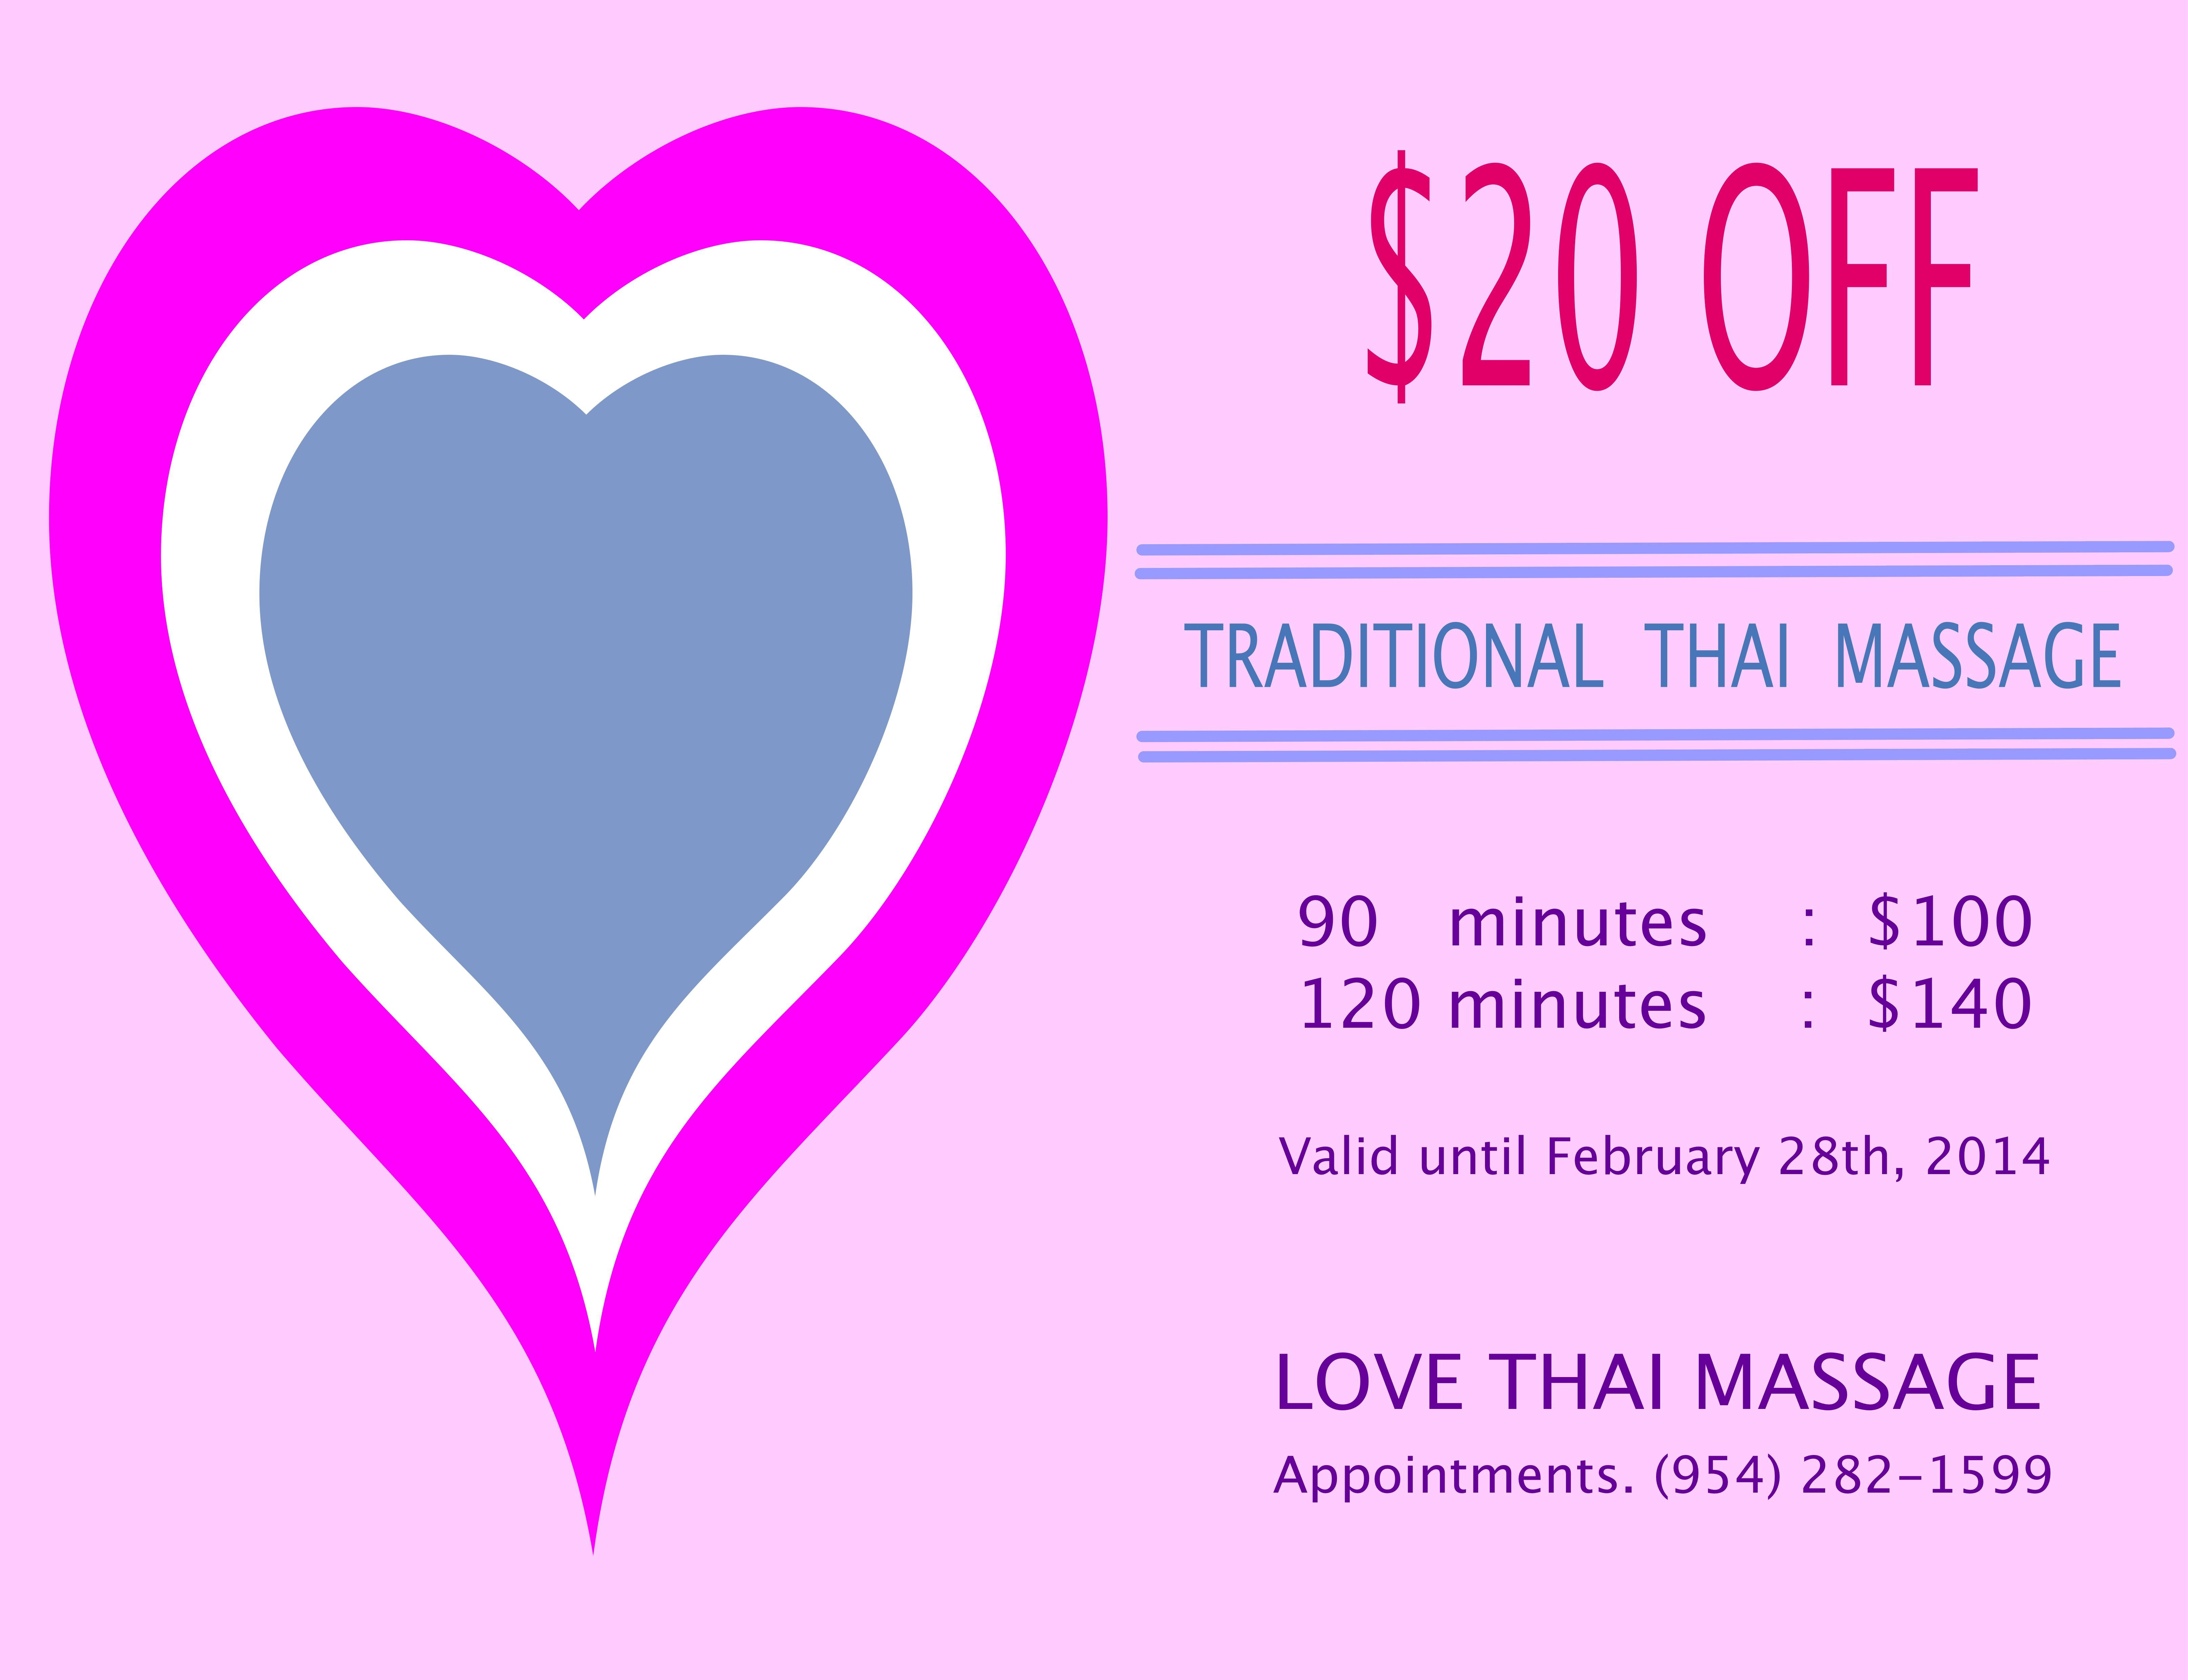 Promotion of the month of love traditiona l thai massage